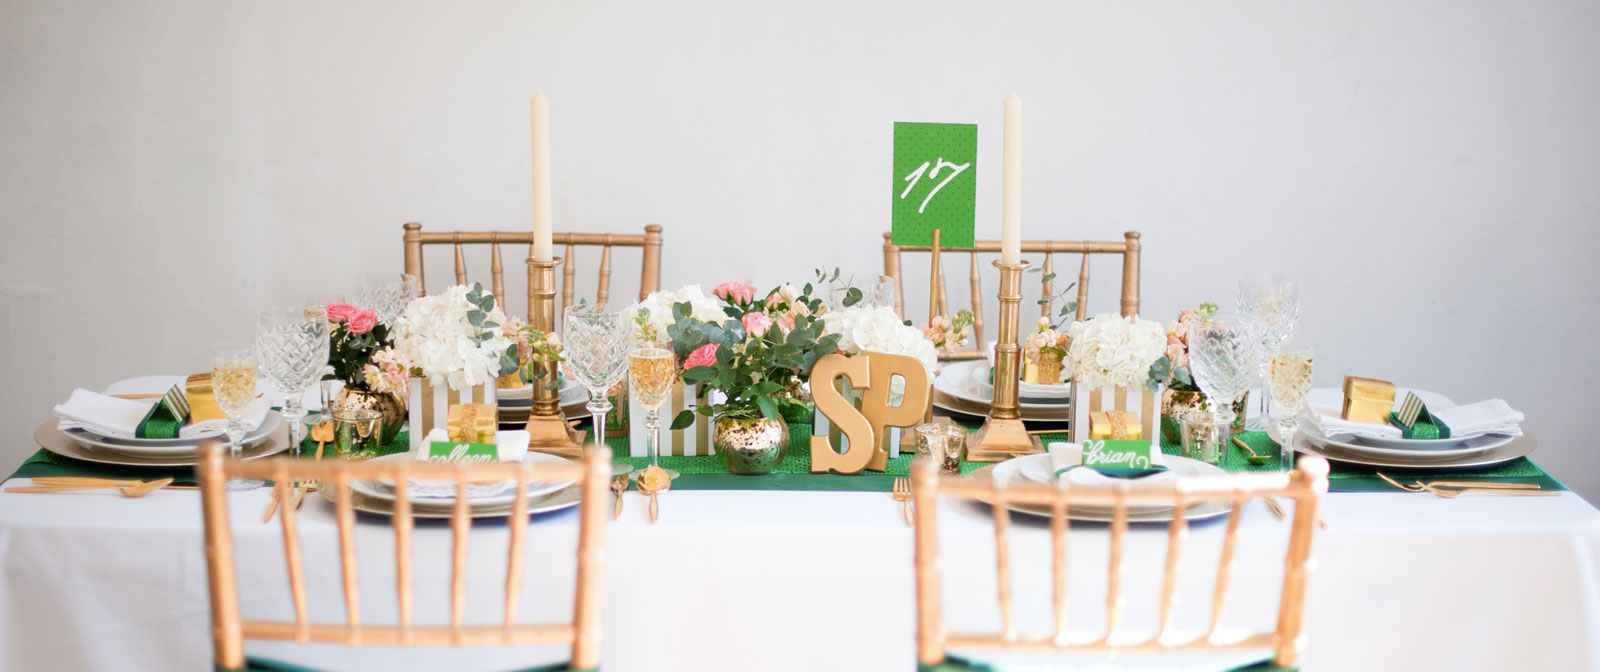 st. patties day table design